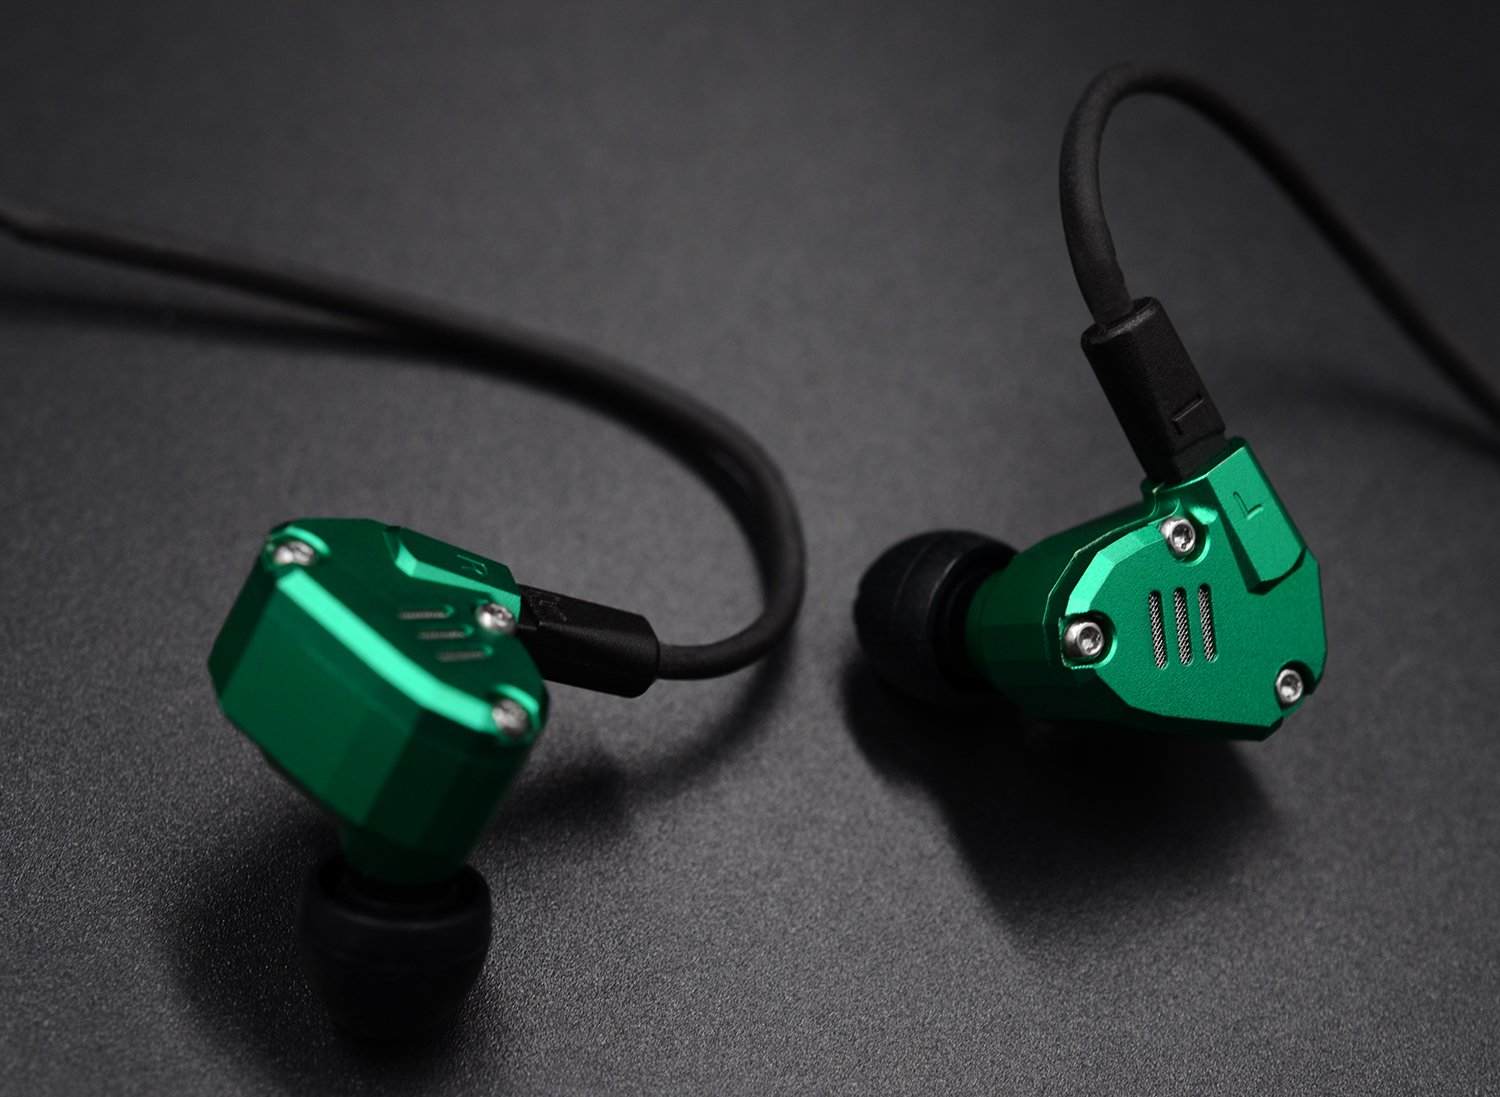 Quad Driver Headphoneserjigo Kz Zs6 High Fidelity Extra Kabel Bluetooth Module Knowledge Zenith Zs3 Zs5 Zst Bass Earbuds Without Microphonewith Detachable Cable Green Musical Instruments